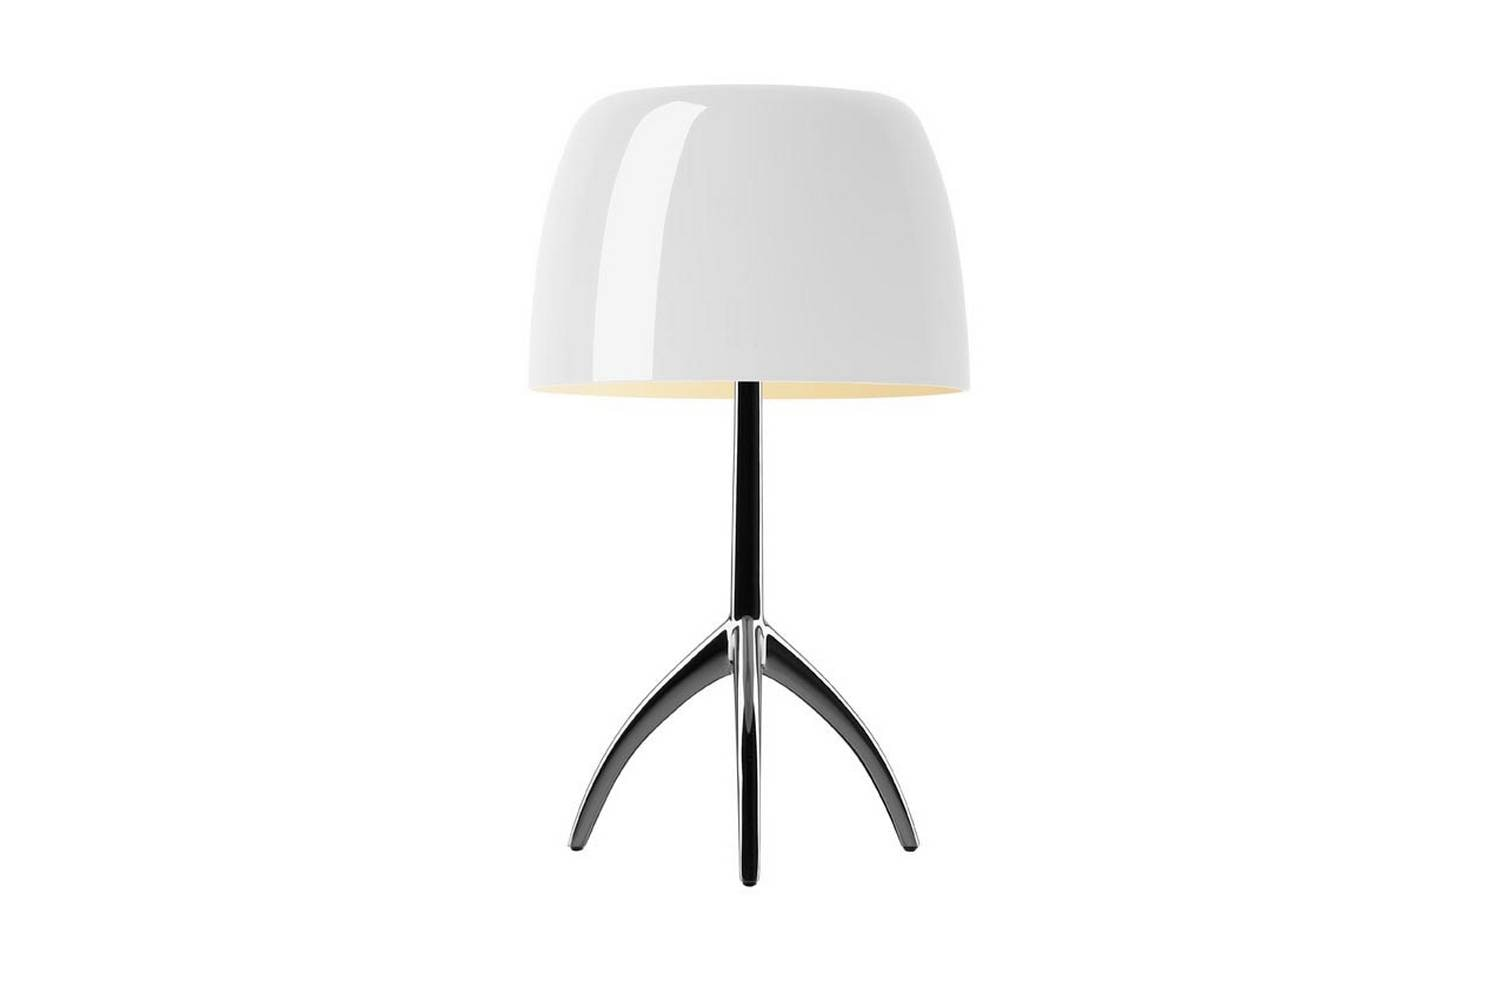 Lumiere Table Lamp by Rodolfo Dordoni for Foscarini